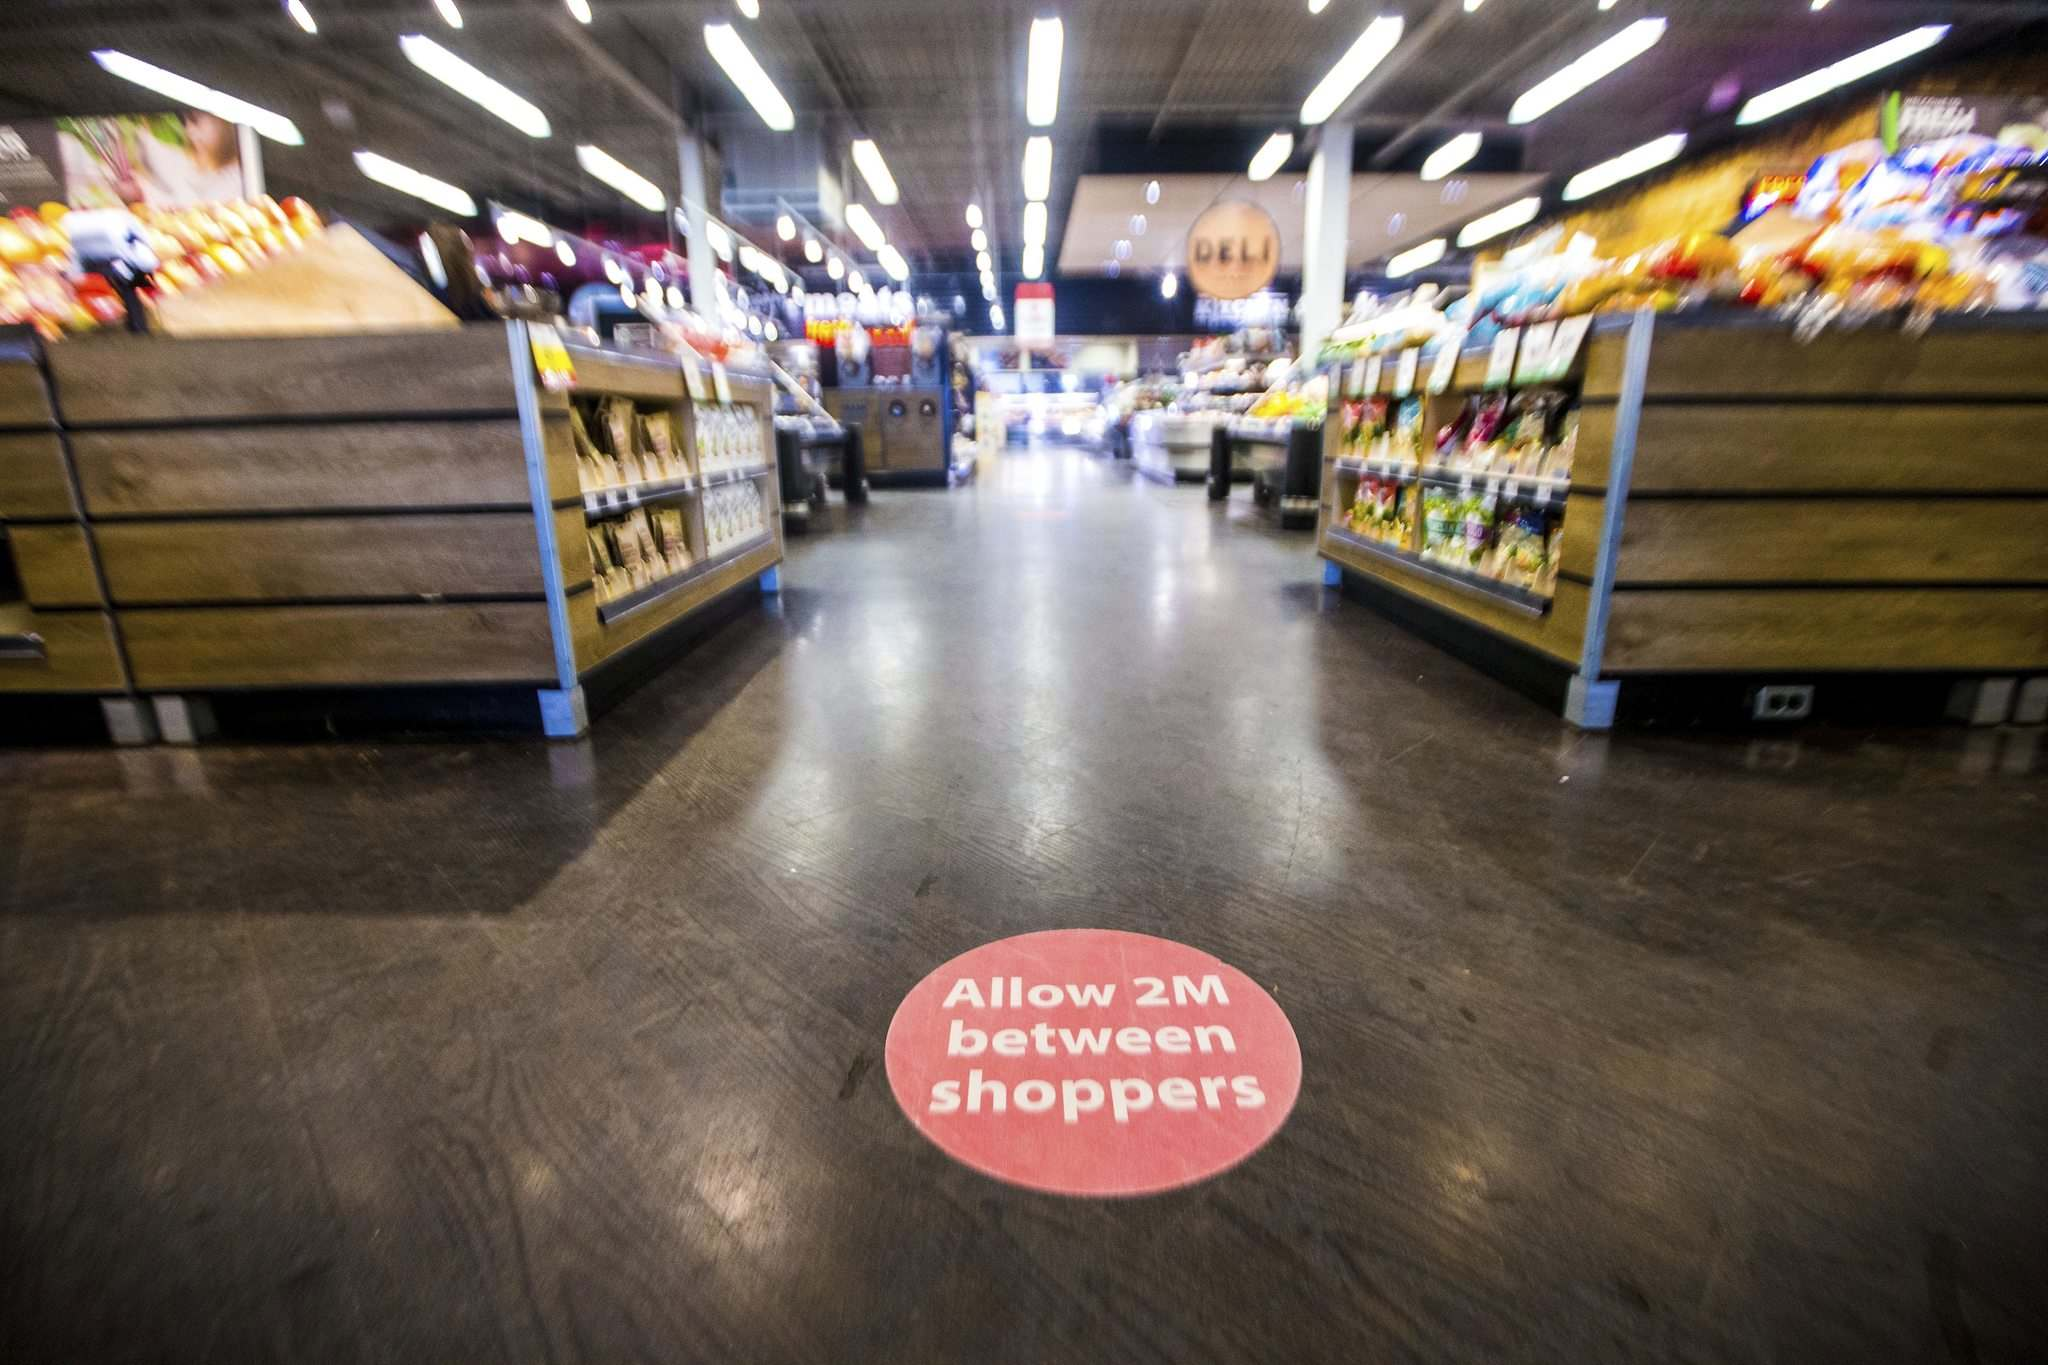 Floor decals encourage social distancing at the Save-On Foods.